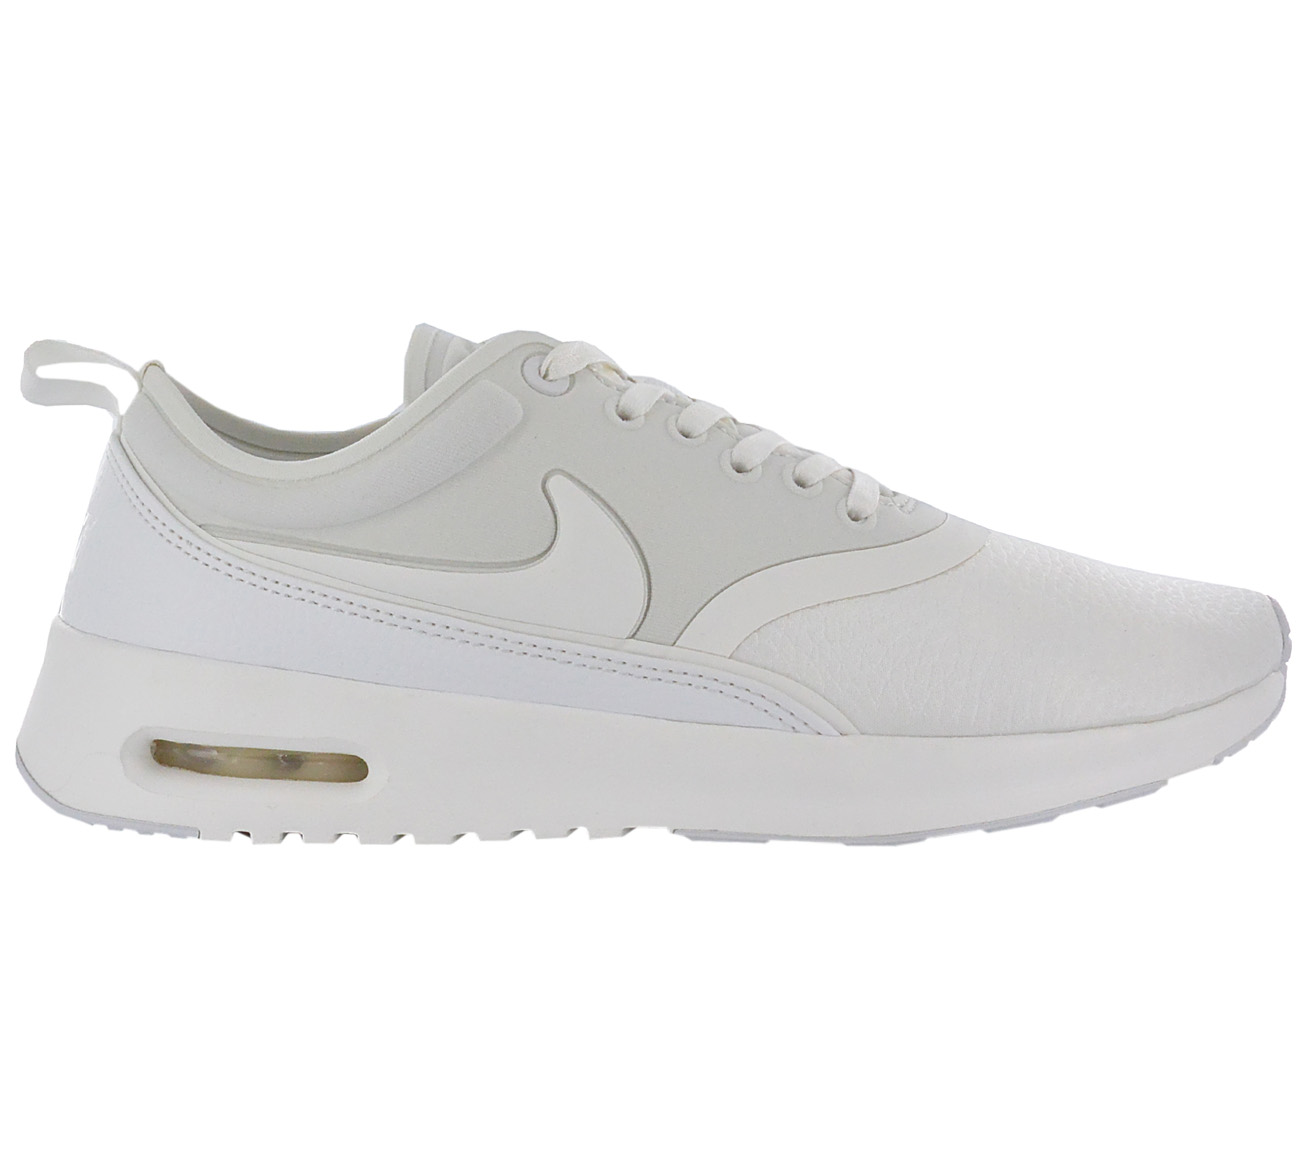 uk availability 95af1 49fdd Nike Womens Sneakers Air Max Thea Ultra Premium Shoe White T